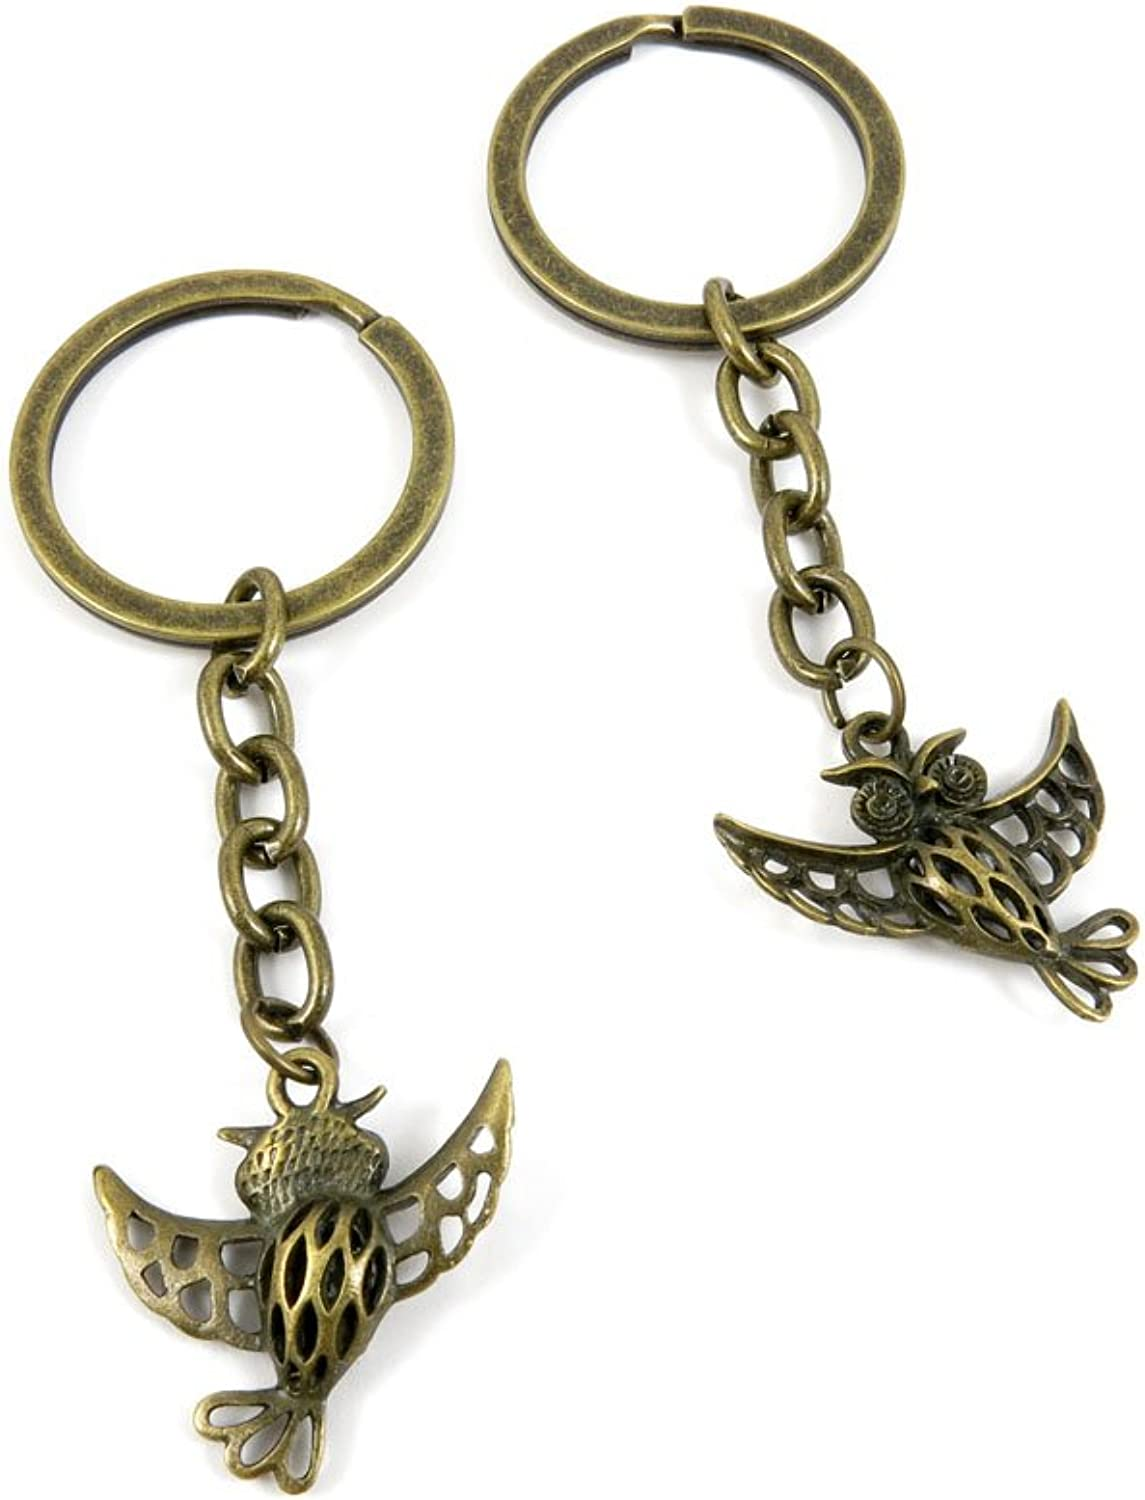 40 PCS Keyring Car Door Key Ring Tag Chain Keychain Wholesale Suppliers Charms Handmade D7UI7 Hollow Owl